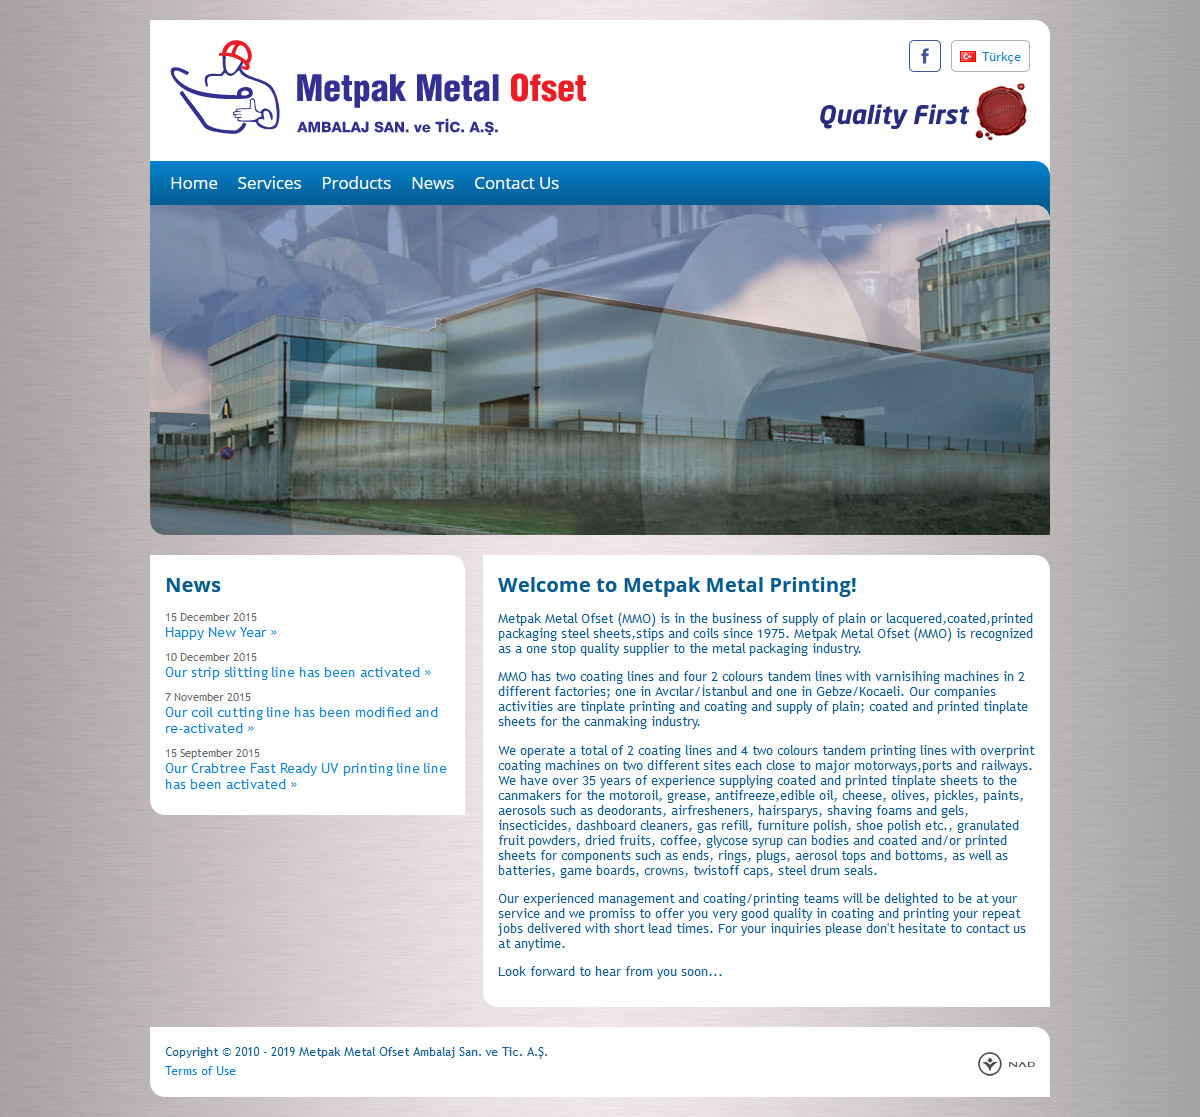 Web Design, Metpak Metal Offset Inc.